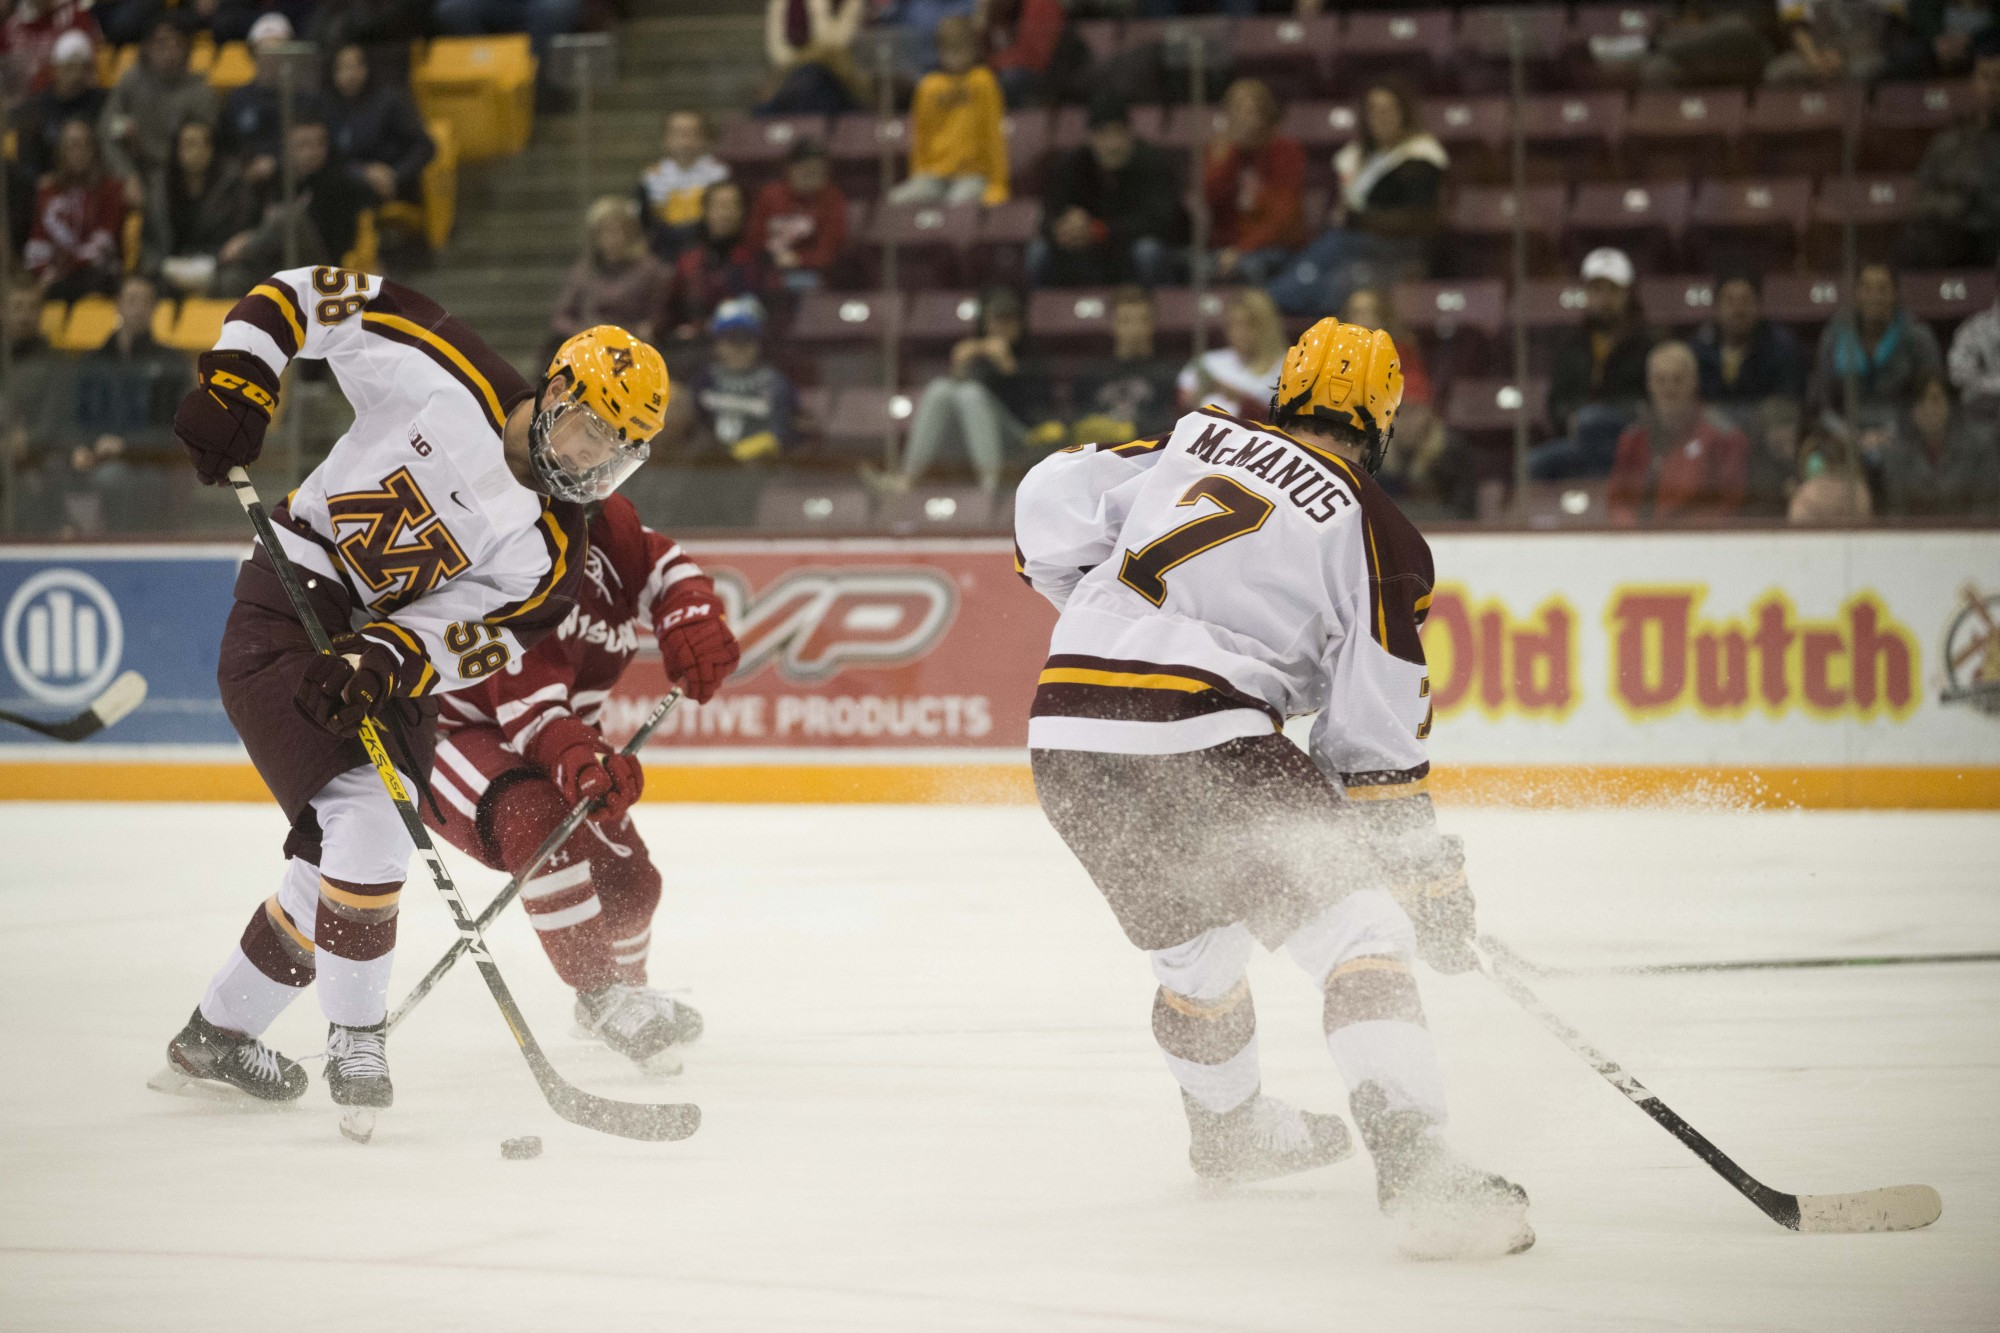 Forward Sampo Ranta fights for the puck during the game against the Wisconsin Badgers at 3M Arena at Mariucci on Friday, Nov. 22. The Gophers won 4-1.